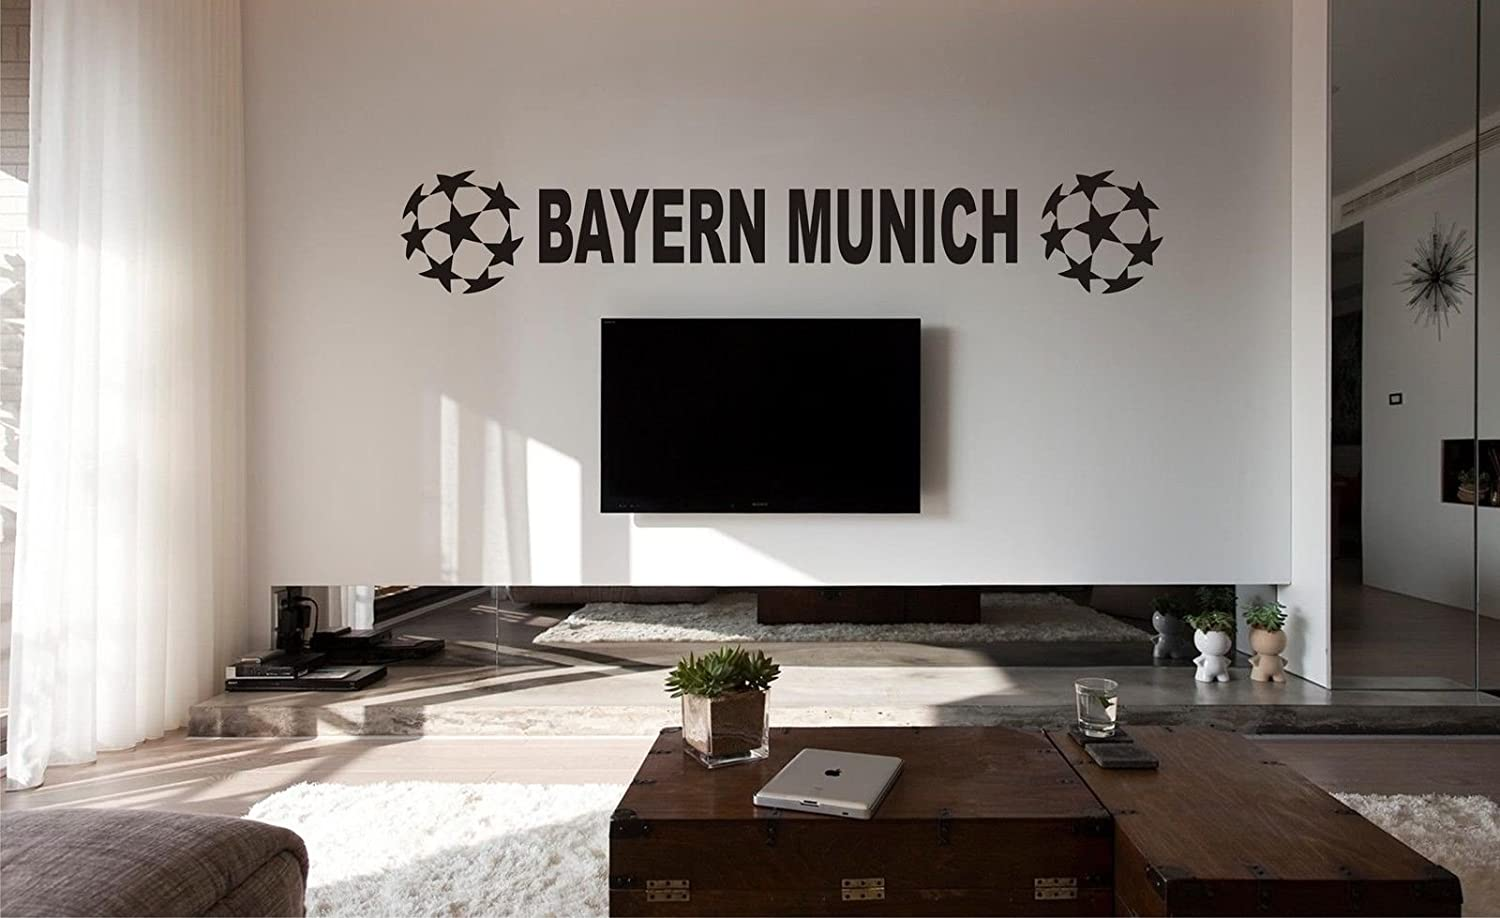 amazon com bayern munich football bedroom poster wall art sticker amazon com bayern munich football bedroom poster wall art sticker decal car vinyl posters prints